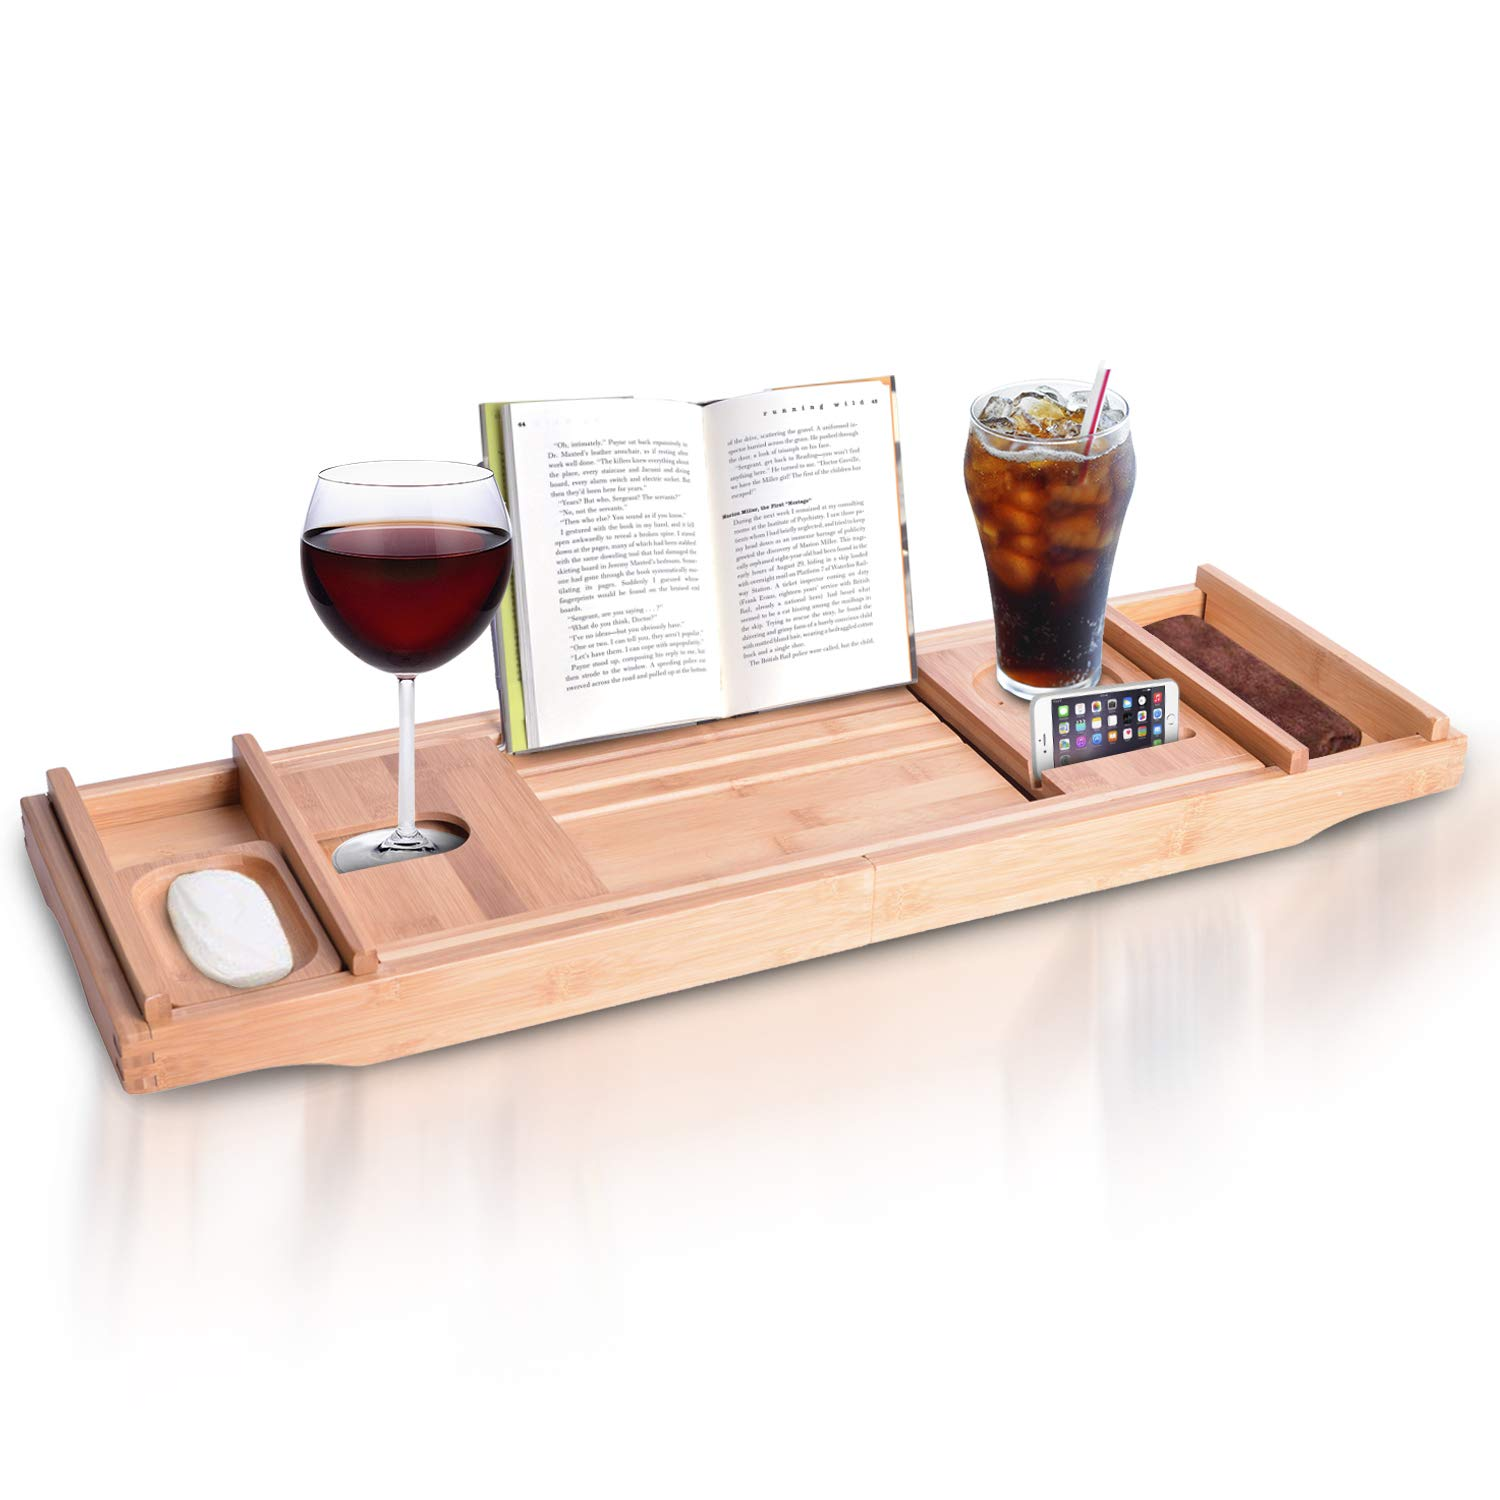 Wooden Bamboo Bath Tray For Tub Organic Bath Caddy As Bathtub Table Tray Caddy Book Holder Wood Bath Trays For Tub With Book Stand Extending Sides Expands Up To 43